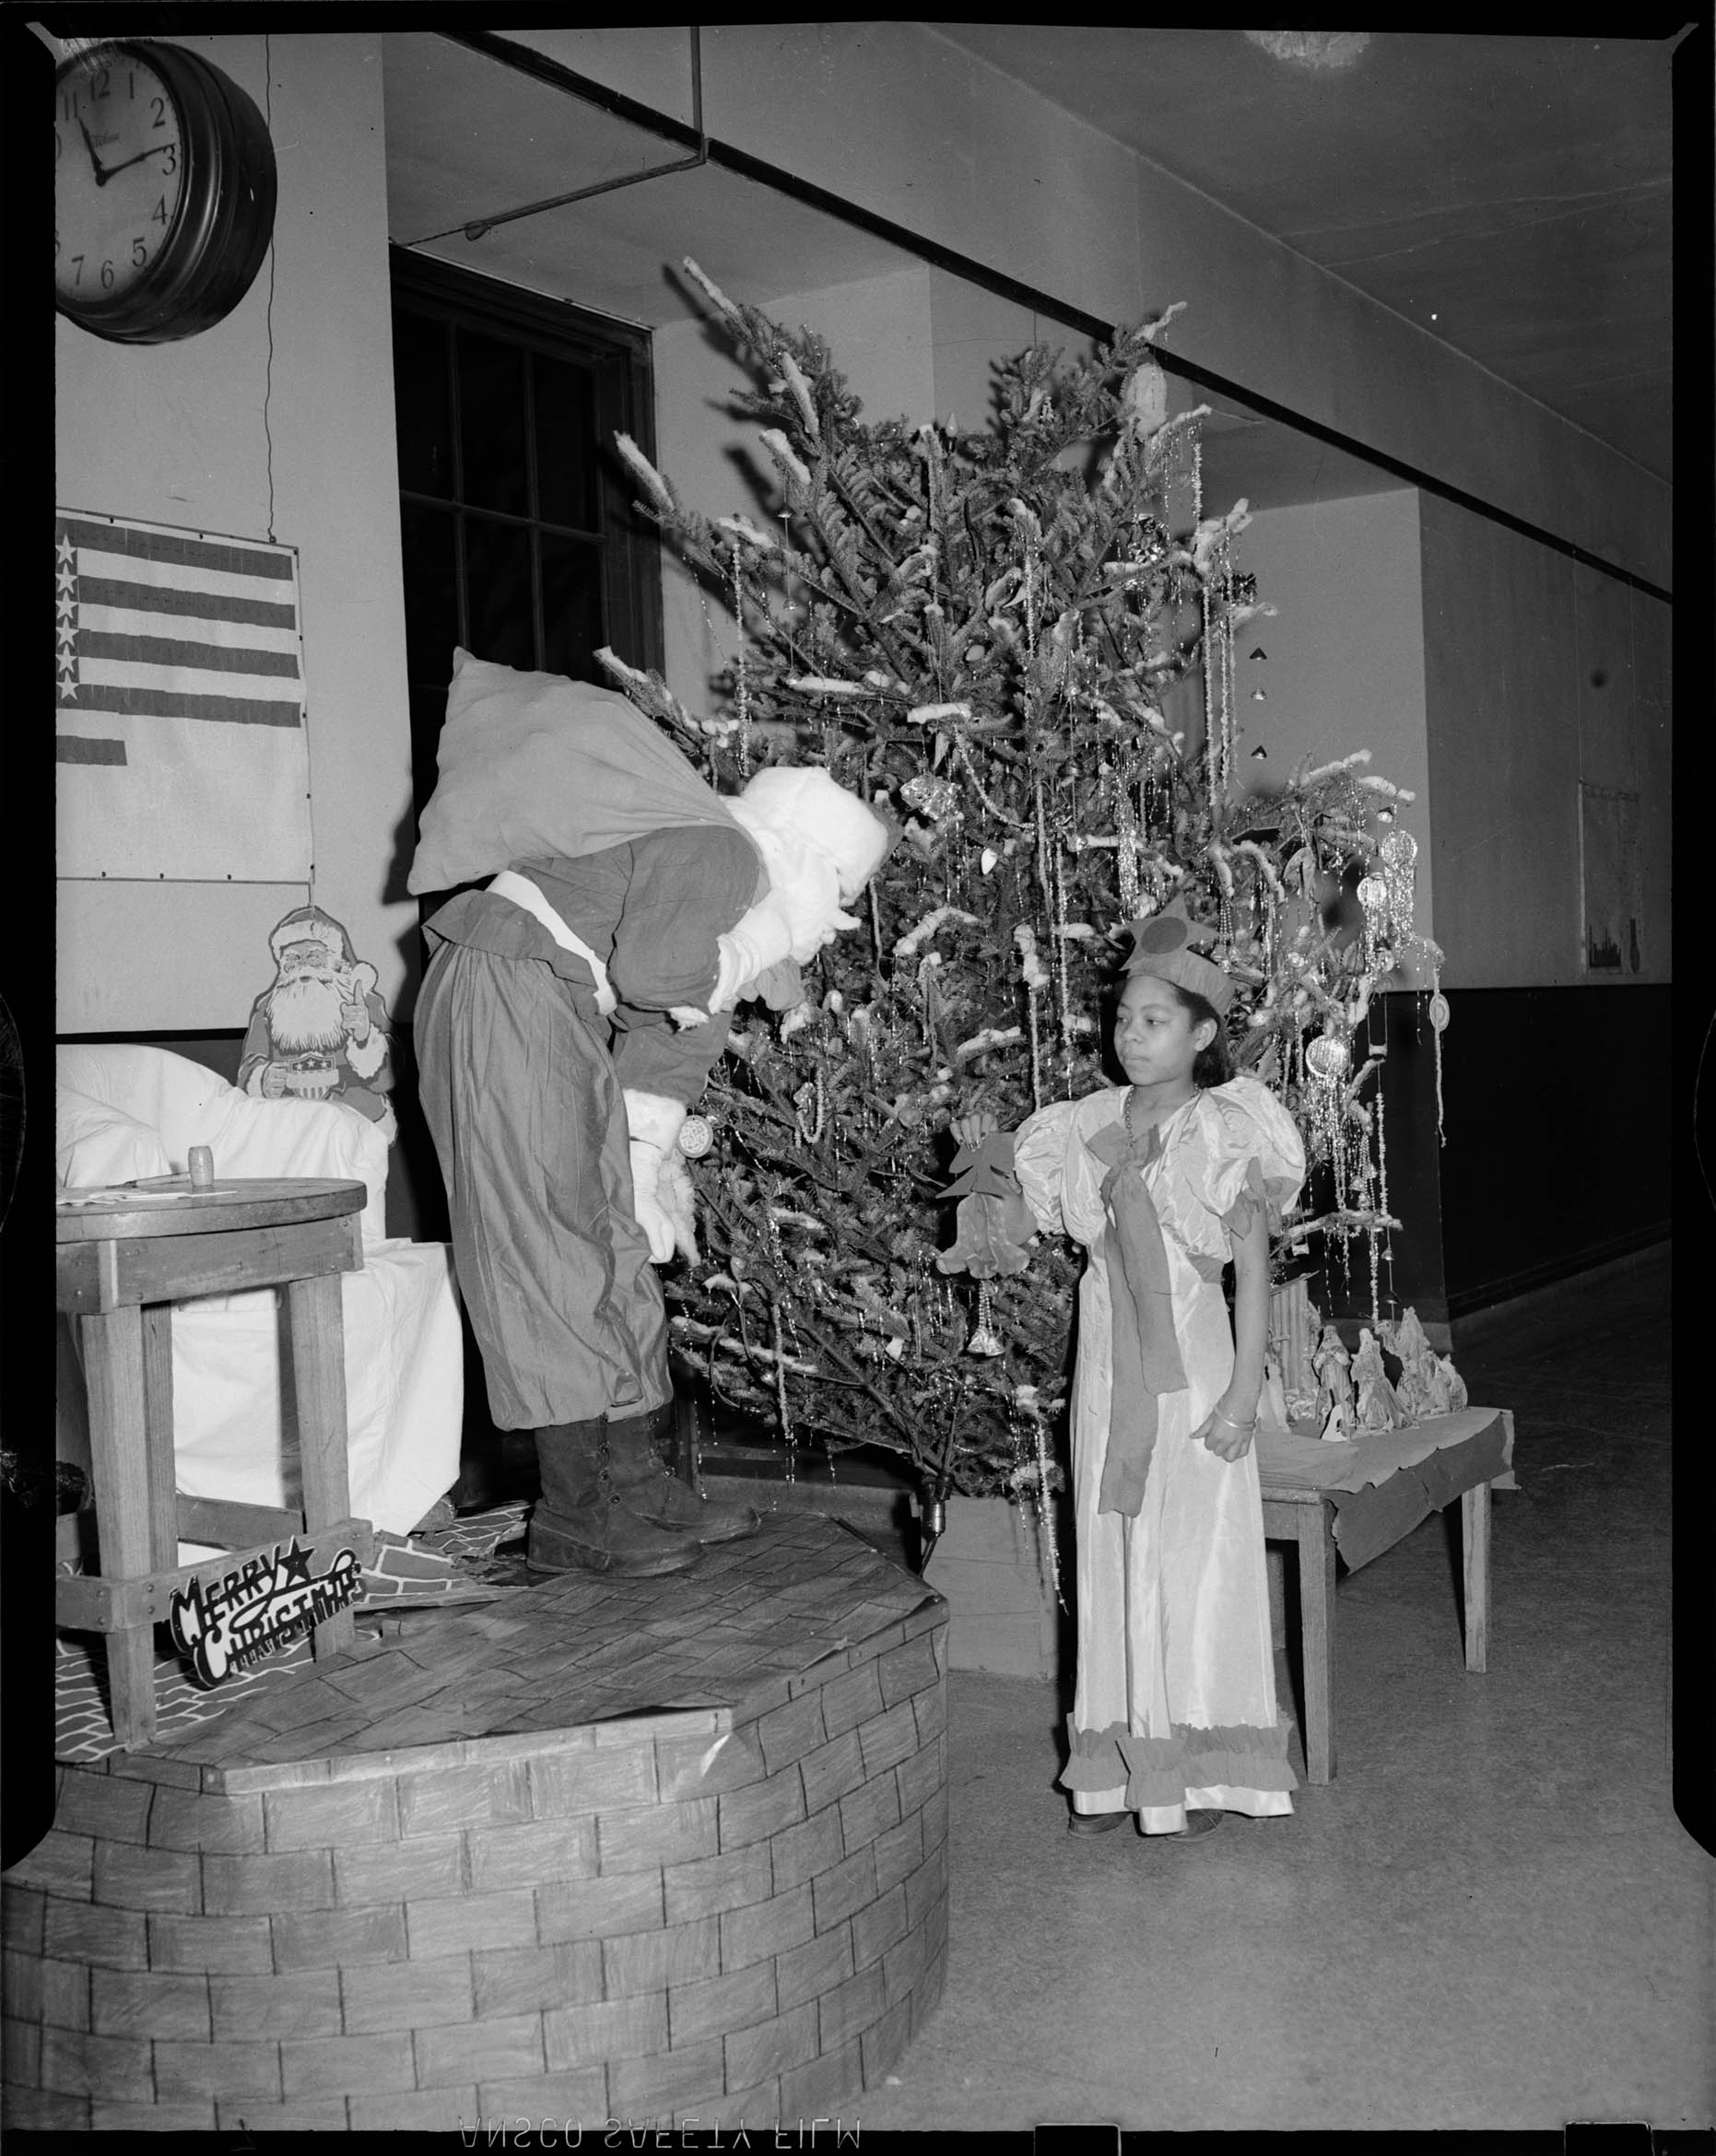 Spirit Of Christmas Past Costume.Man Wearing Santa Claus Costume Standing On Small Stage